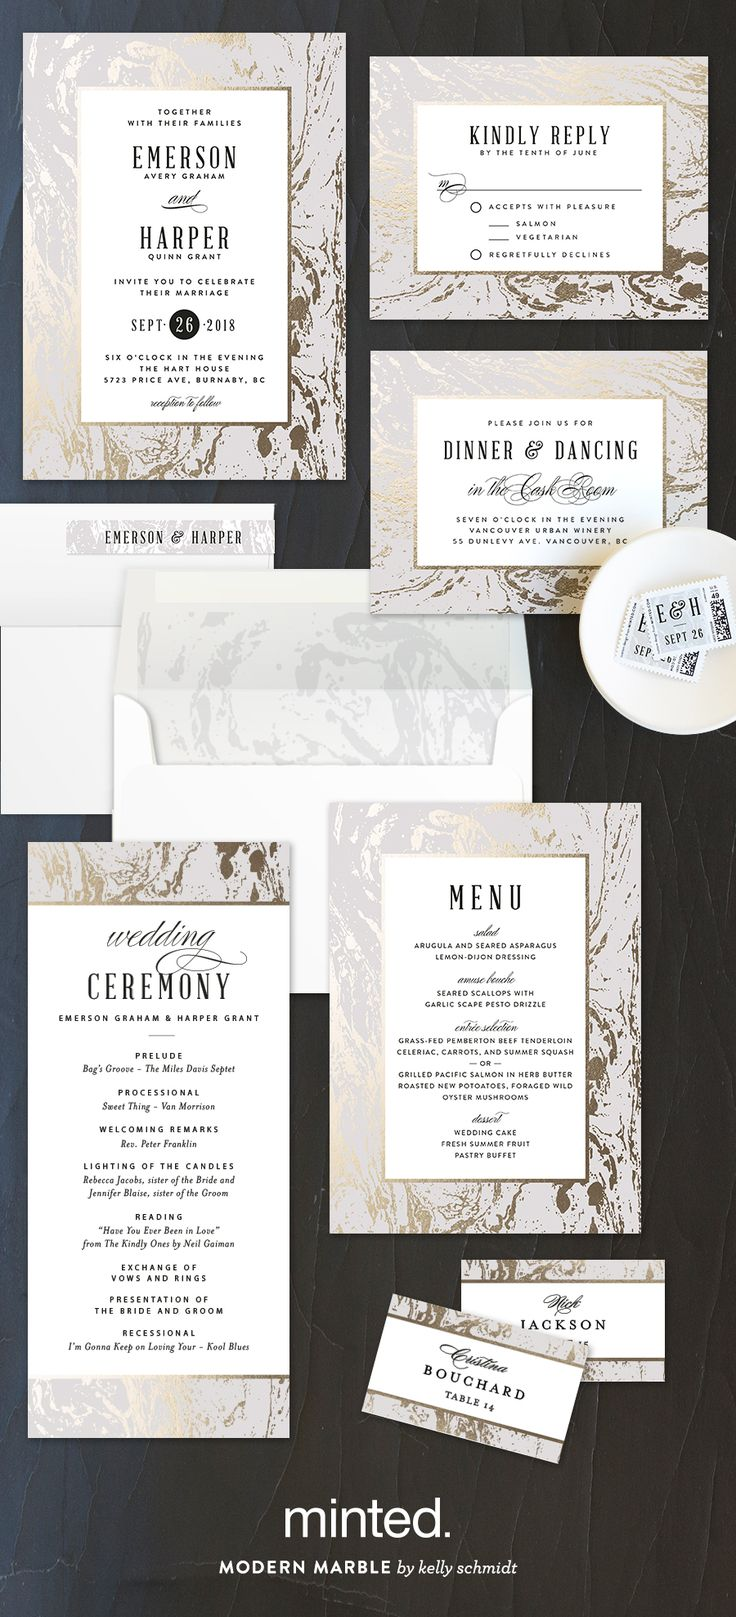 make your own wedding invitations online free%0A Make your theme a contemporary classic with Modern Marble wedding invitation  design by Minted artist Kelly Schmidt  Completely customizable on Minted